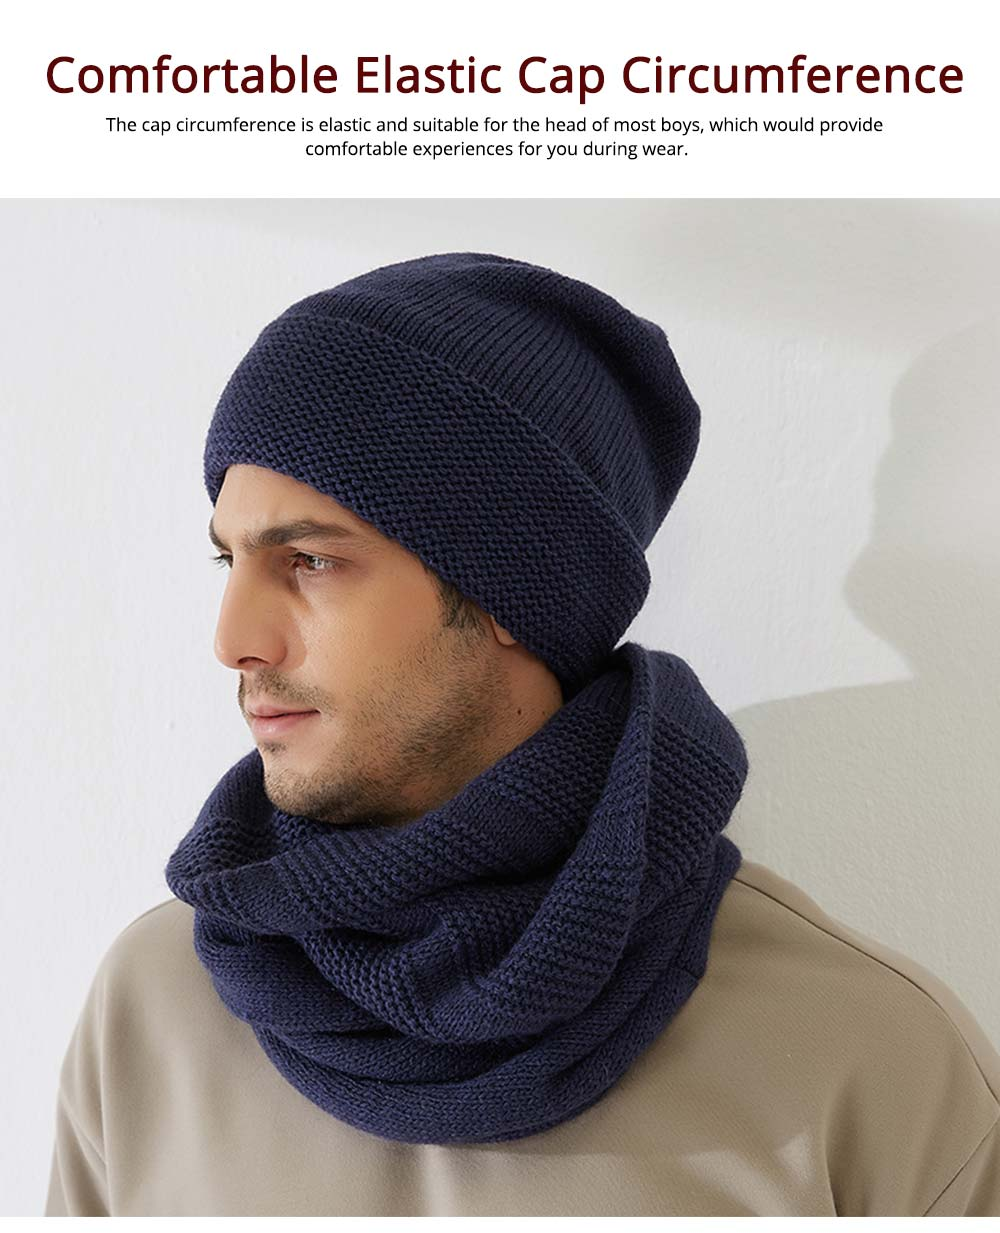 Men's Scarf and Hat 2pcs Set, Warm Soft Acrylic Elastic Face Neck Warmer Cravat 9